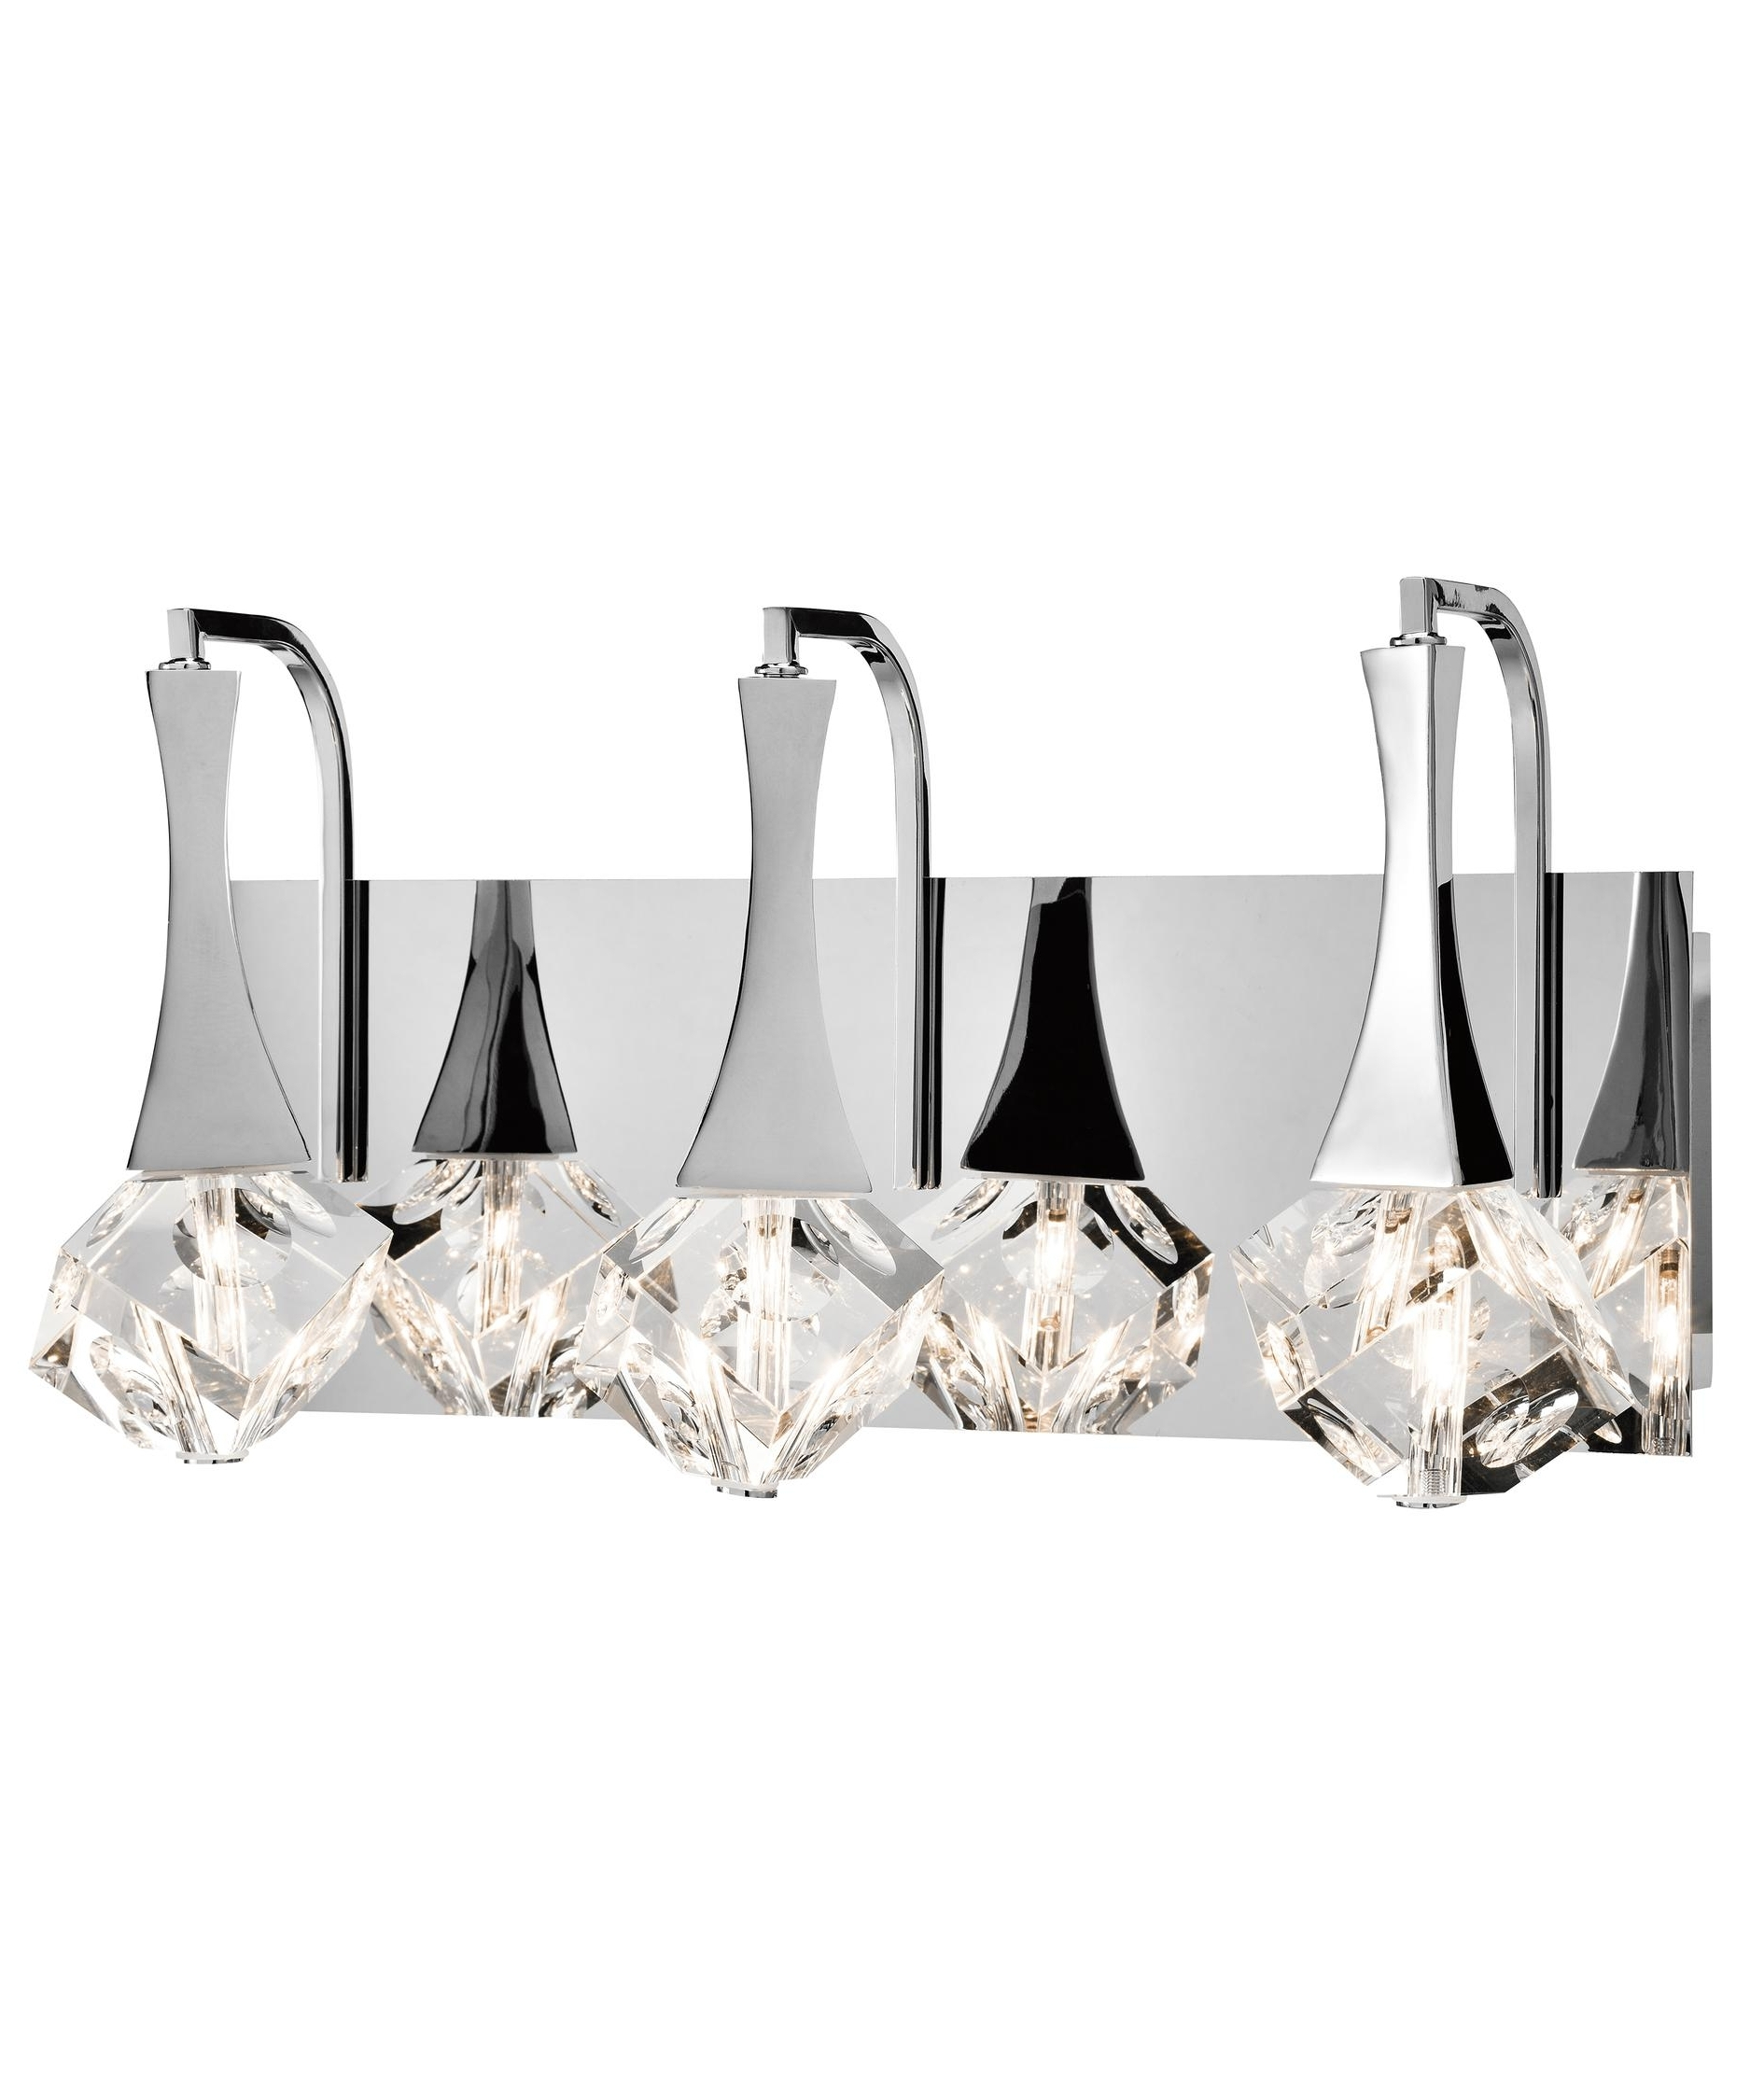 Chandelier Bathroom Vanity Lighting For Favorite Add A Little Sparkle To Your Home Gross Electric Mattresses Dining (View 4 of 20)